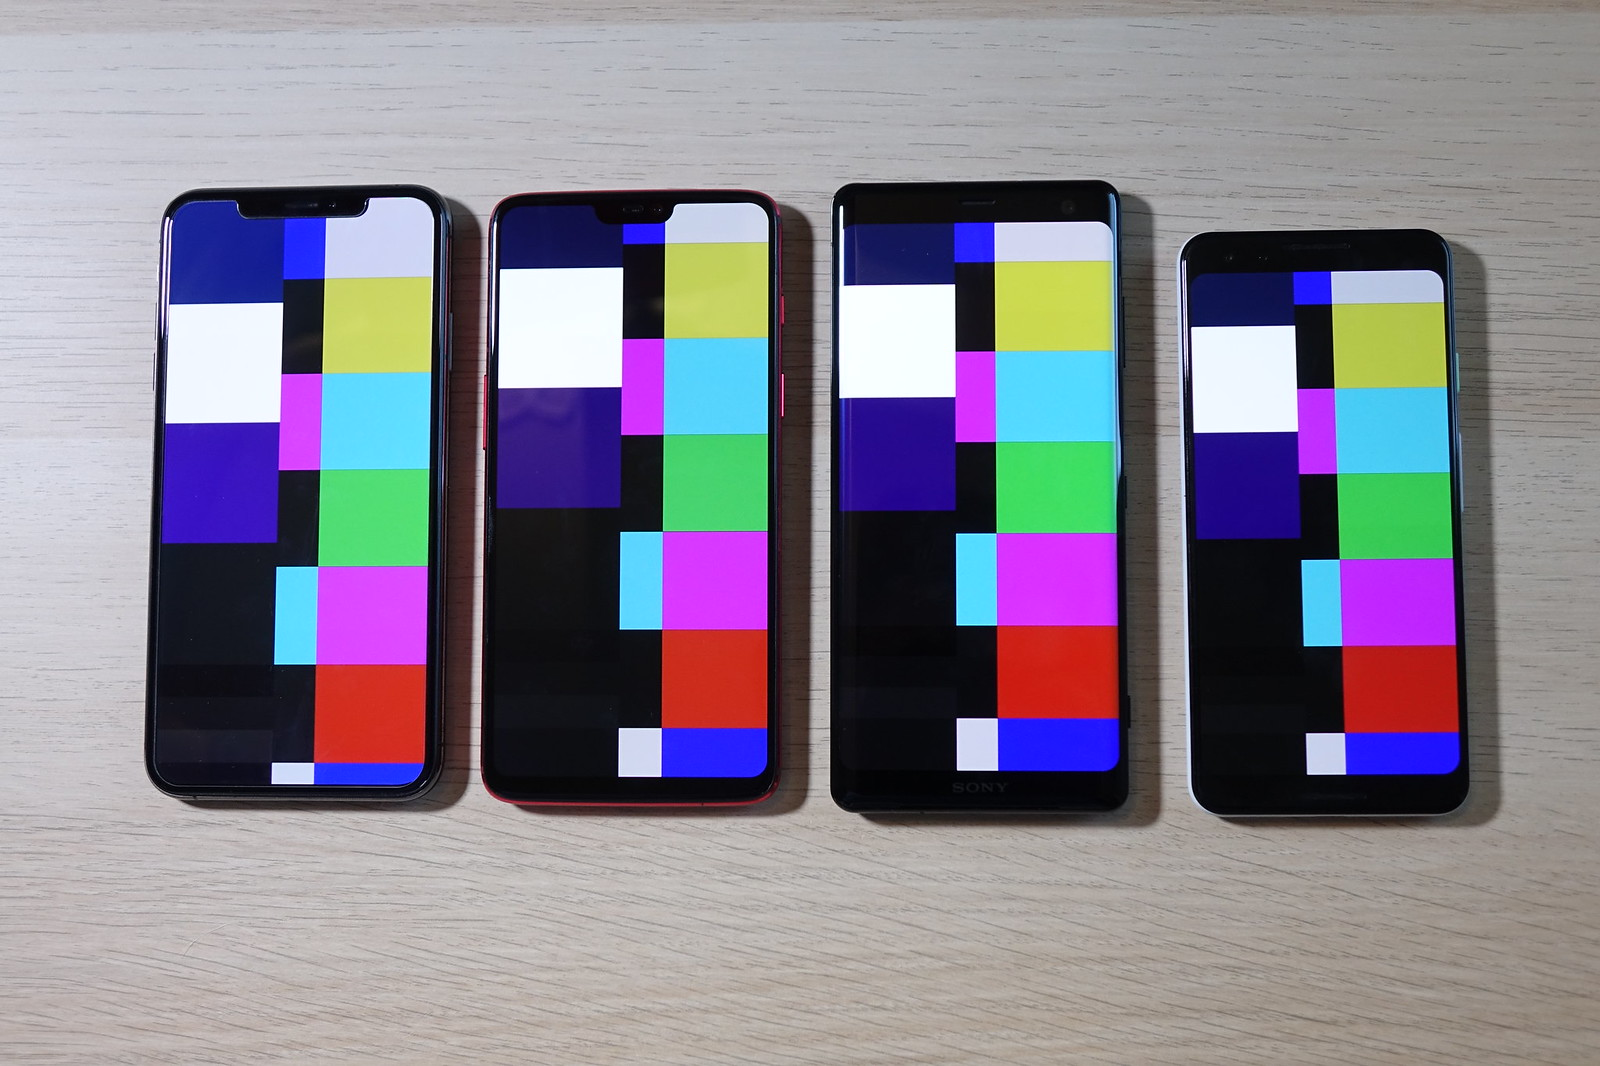 xs_op6_xz3_p3_colordisplay